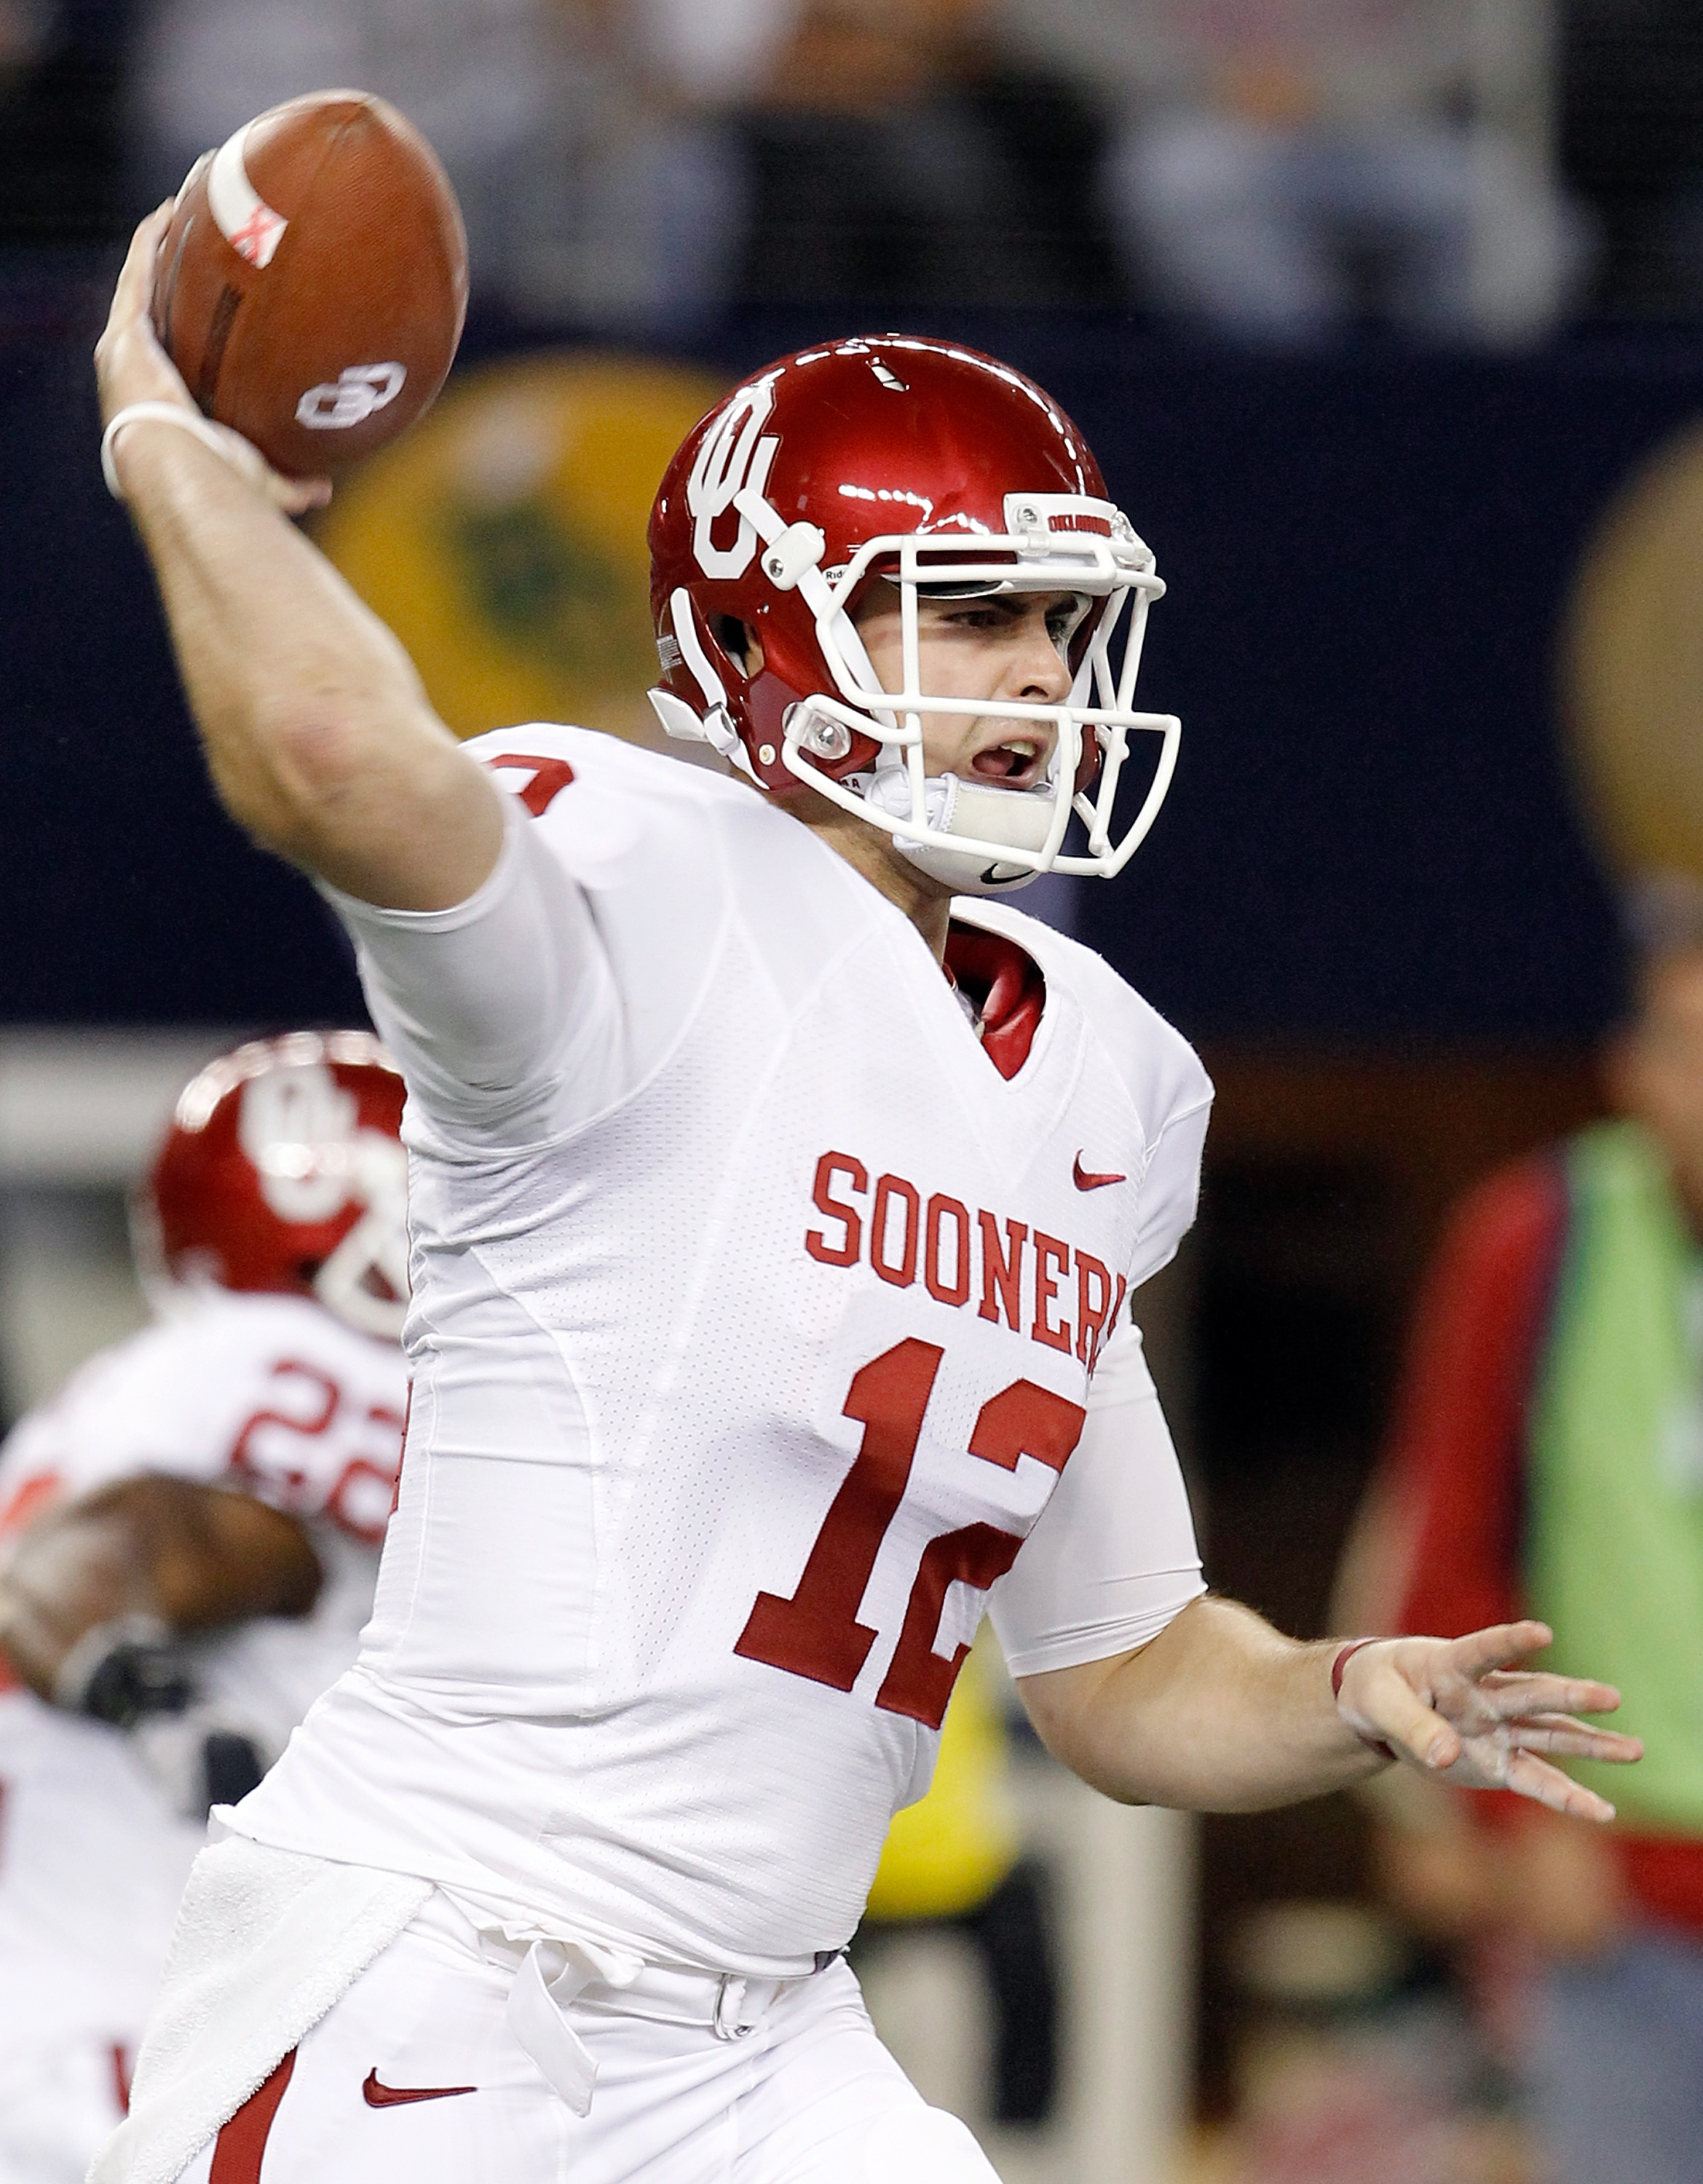 ARLINGTON, TX - DECEMBER 04:  Quarterback Landry Jones #12 of the Oklahoma Sooners looks for an open receiver against the Nebraska Cornhuskers at Cowboys Stadium on December 4, 2010 in Arlington, Texas.  The Sooners beat the Cornhuskers 23-20.  (Photo by